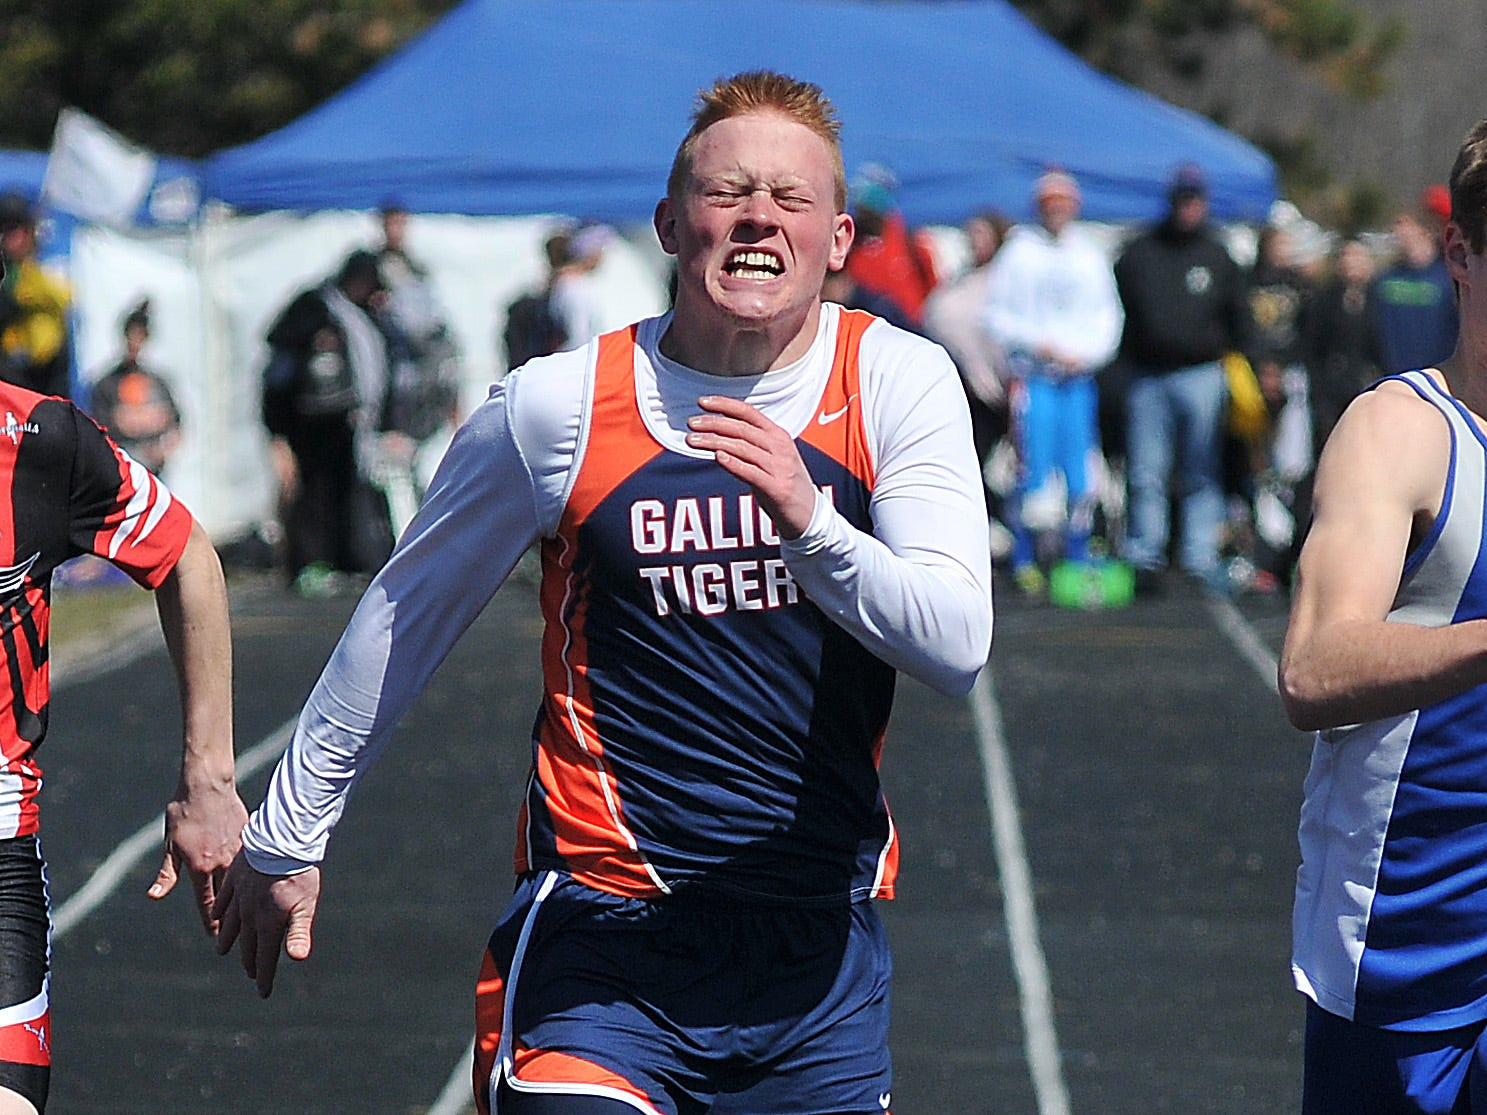 Galion's Jacob Fryer nears the finish line of the Boys 100 Meter Dash during the Bucyrus Elks 156 Track Invitational Saturday at Bucyrus High School.